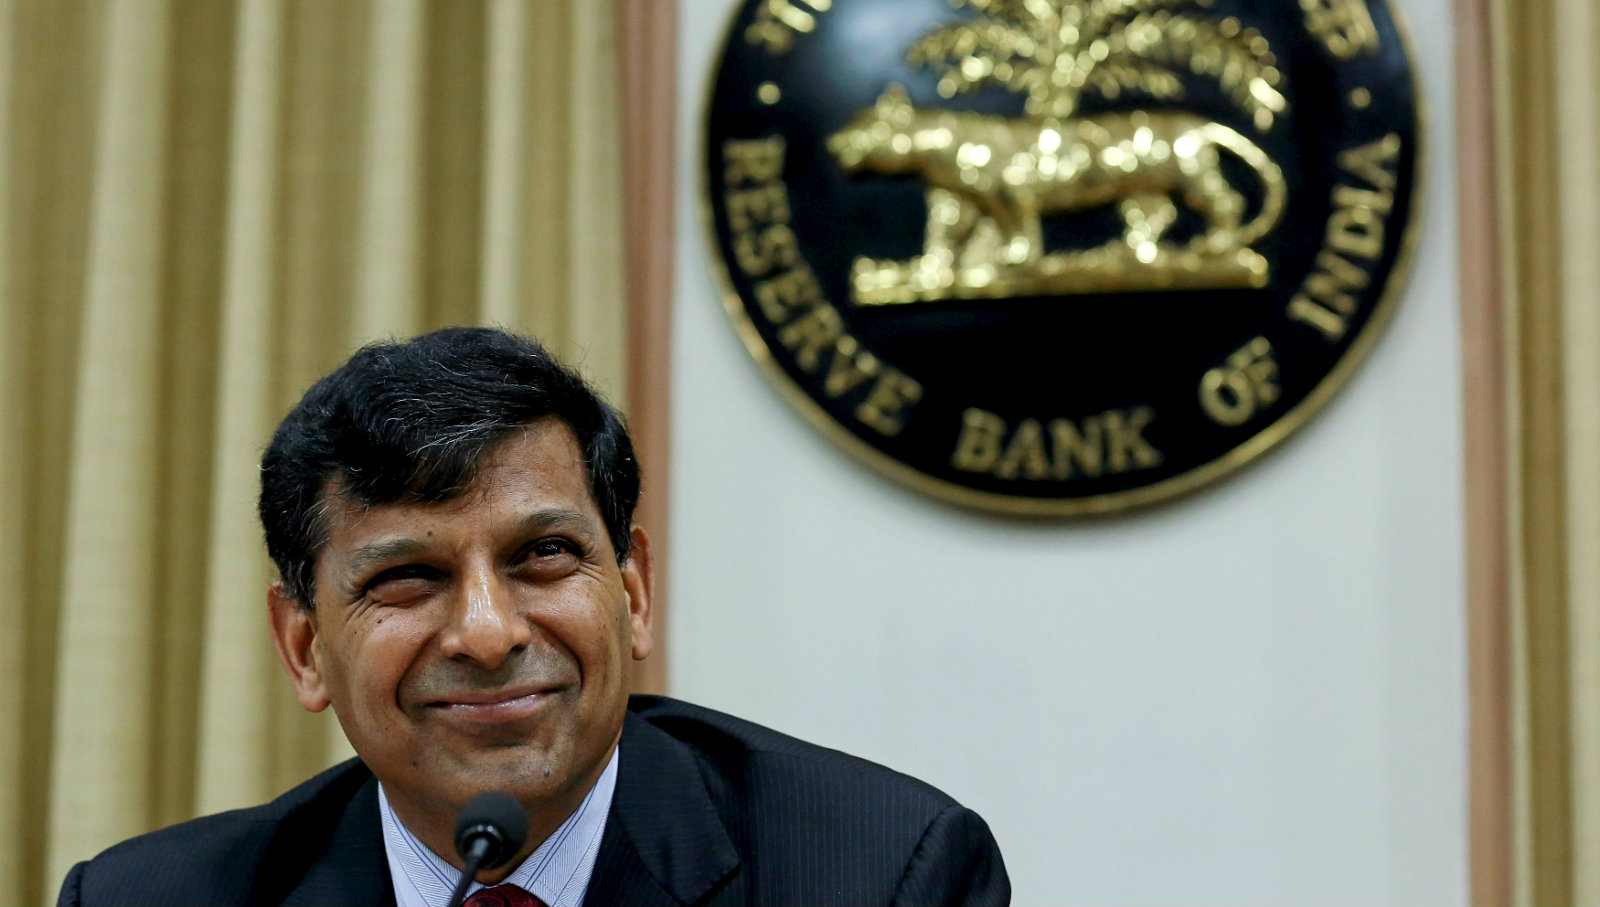 Reserve Bank of India (RBI) Governor Raghuram Rajan listens to a question at a news conference after the bi-monthly monetary policy review in Mumbai, India, June 2, 2015. India's central bank cut its policy interest rate by a quarter percentage point on Tuesday, easing policy for a third time this year, in a move that was widely expected as policymakers try to put the improving economy on a firmer footing.